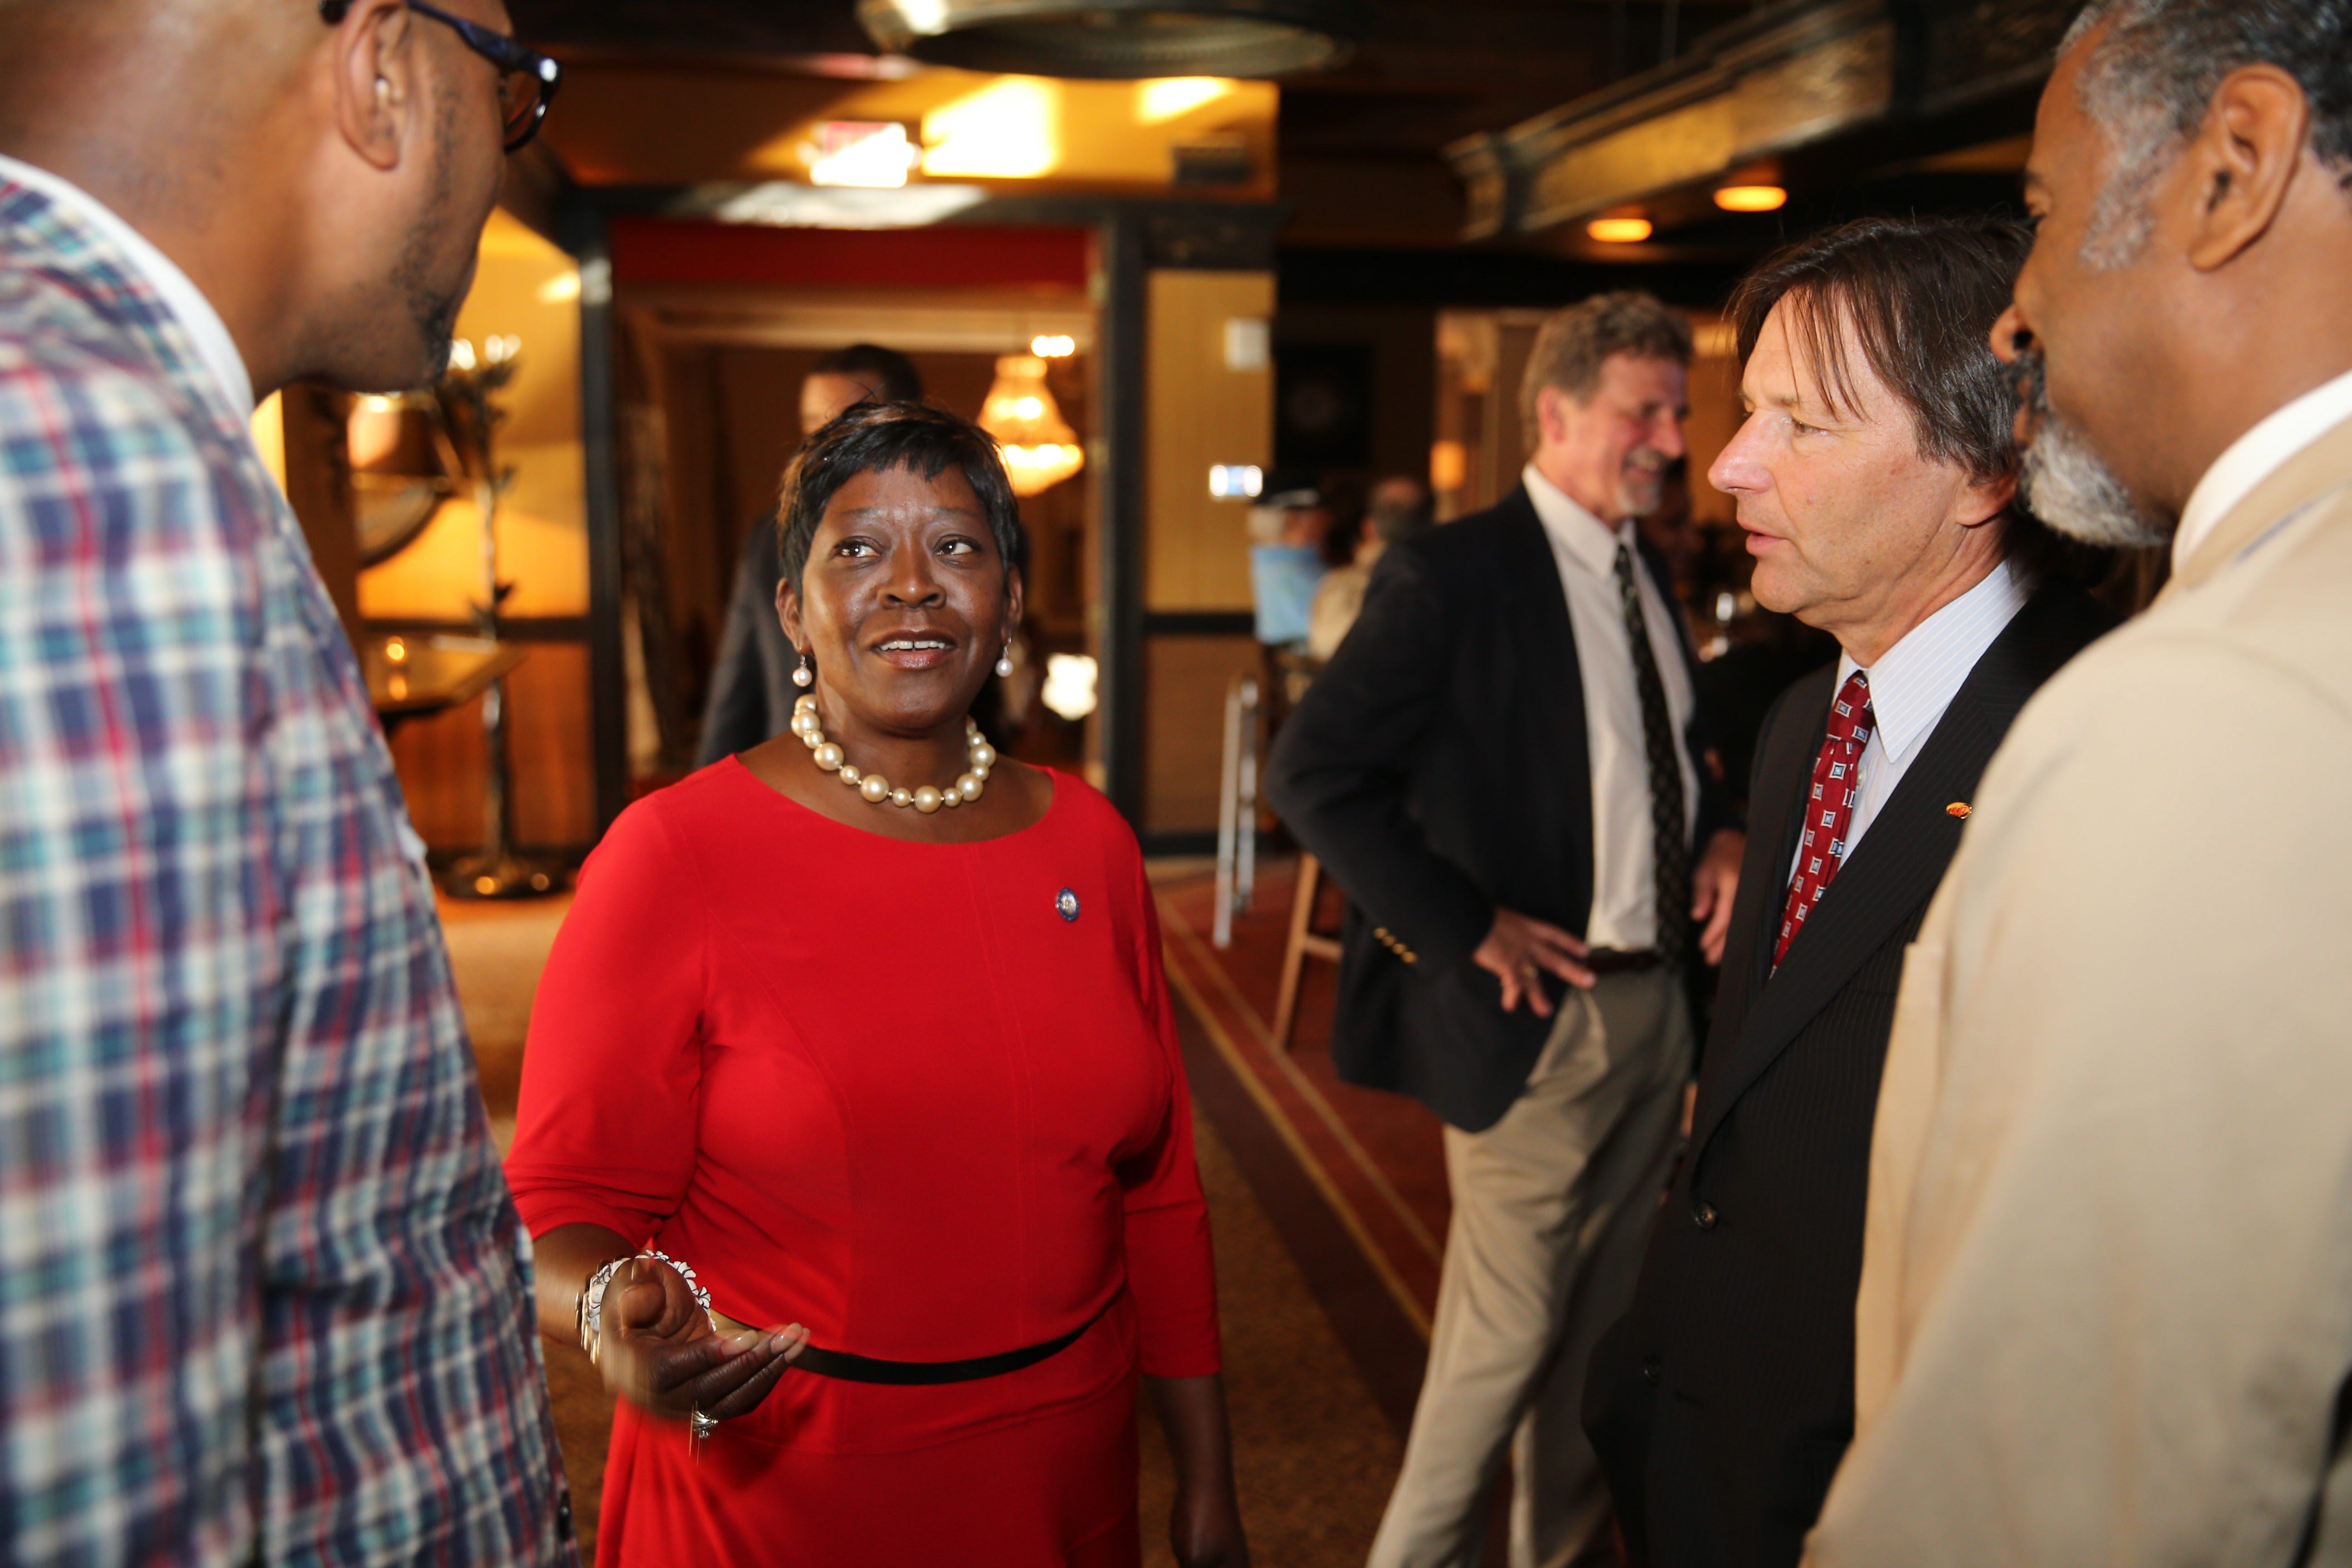 Assemblywoman Crystal Peoples-Stokes, who was elected in 2002, speaks to backers at Statler City as she faces her first test in a Democratic primary.